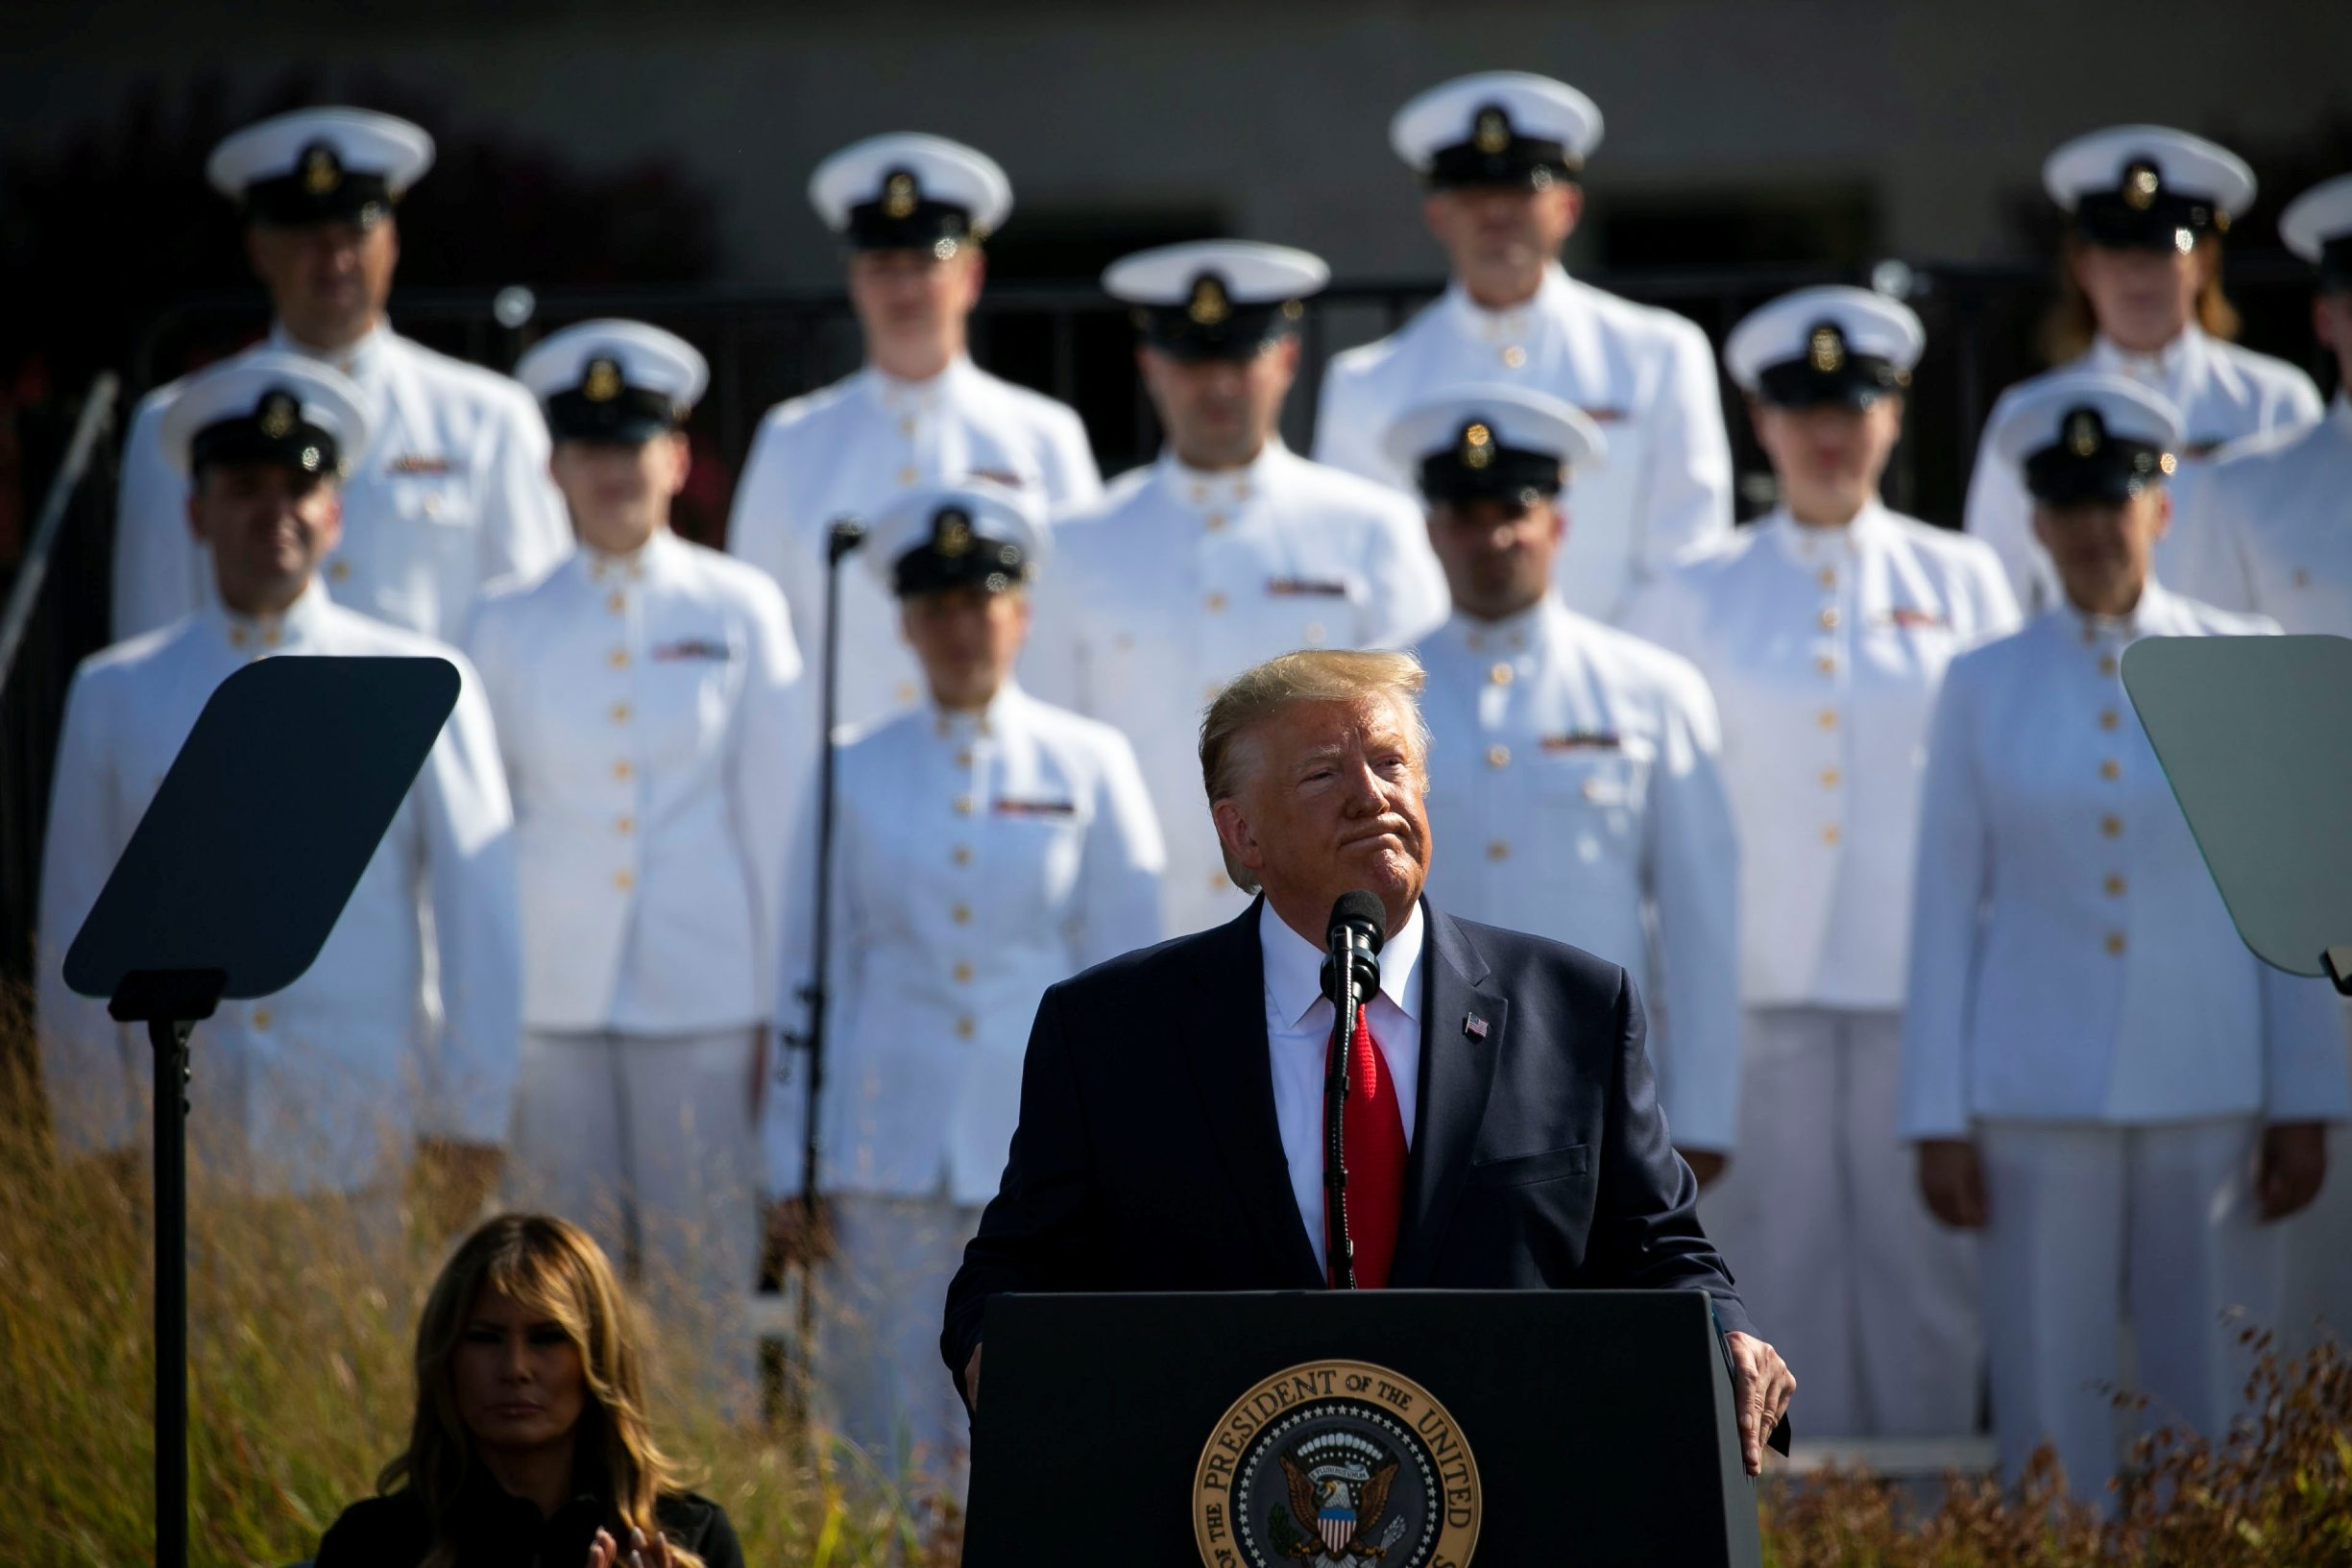 U.S. President Donald Trump speaks next to first lady Melania Trump during a ceremony marking the 18th anniversary of September 11 attacks at the Pentagon in Arlington, Virginia, U.S., September 11, 2019. REUTERS/Al Drago